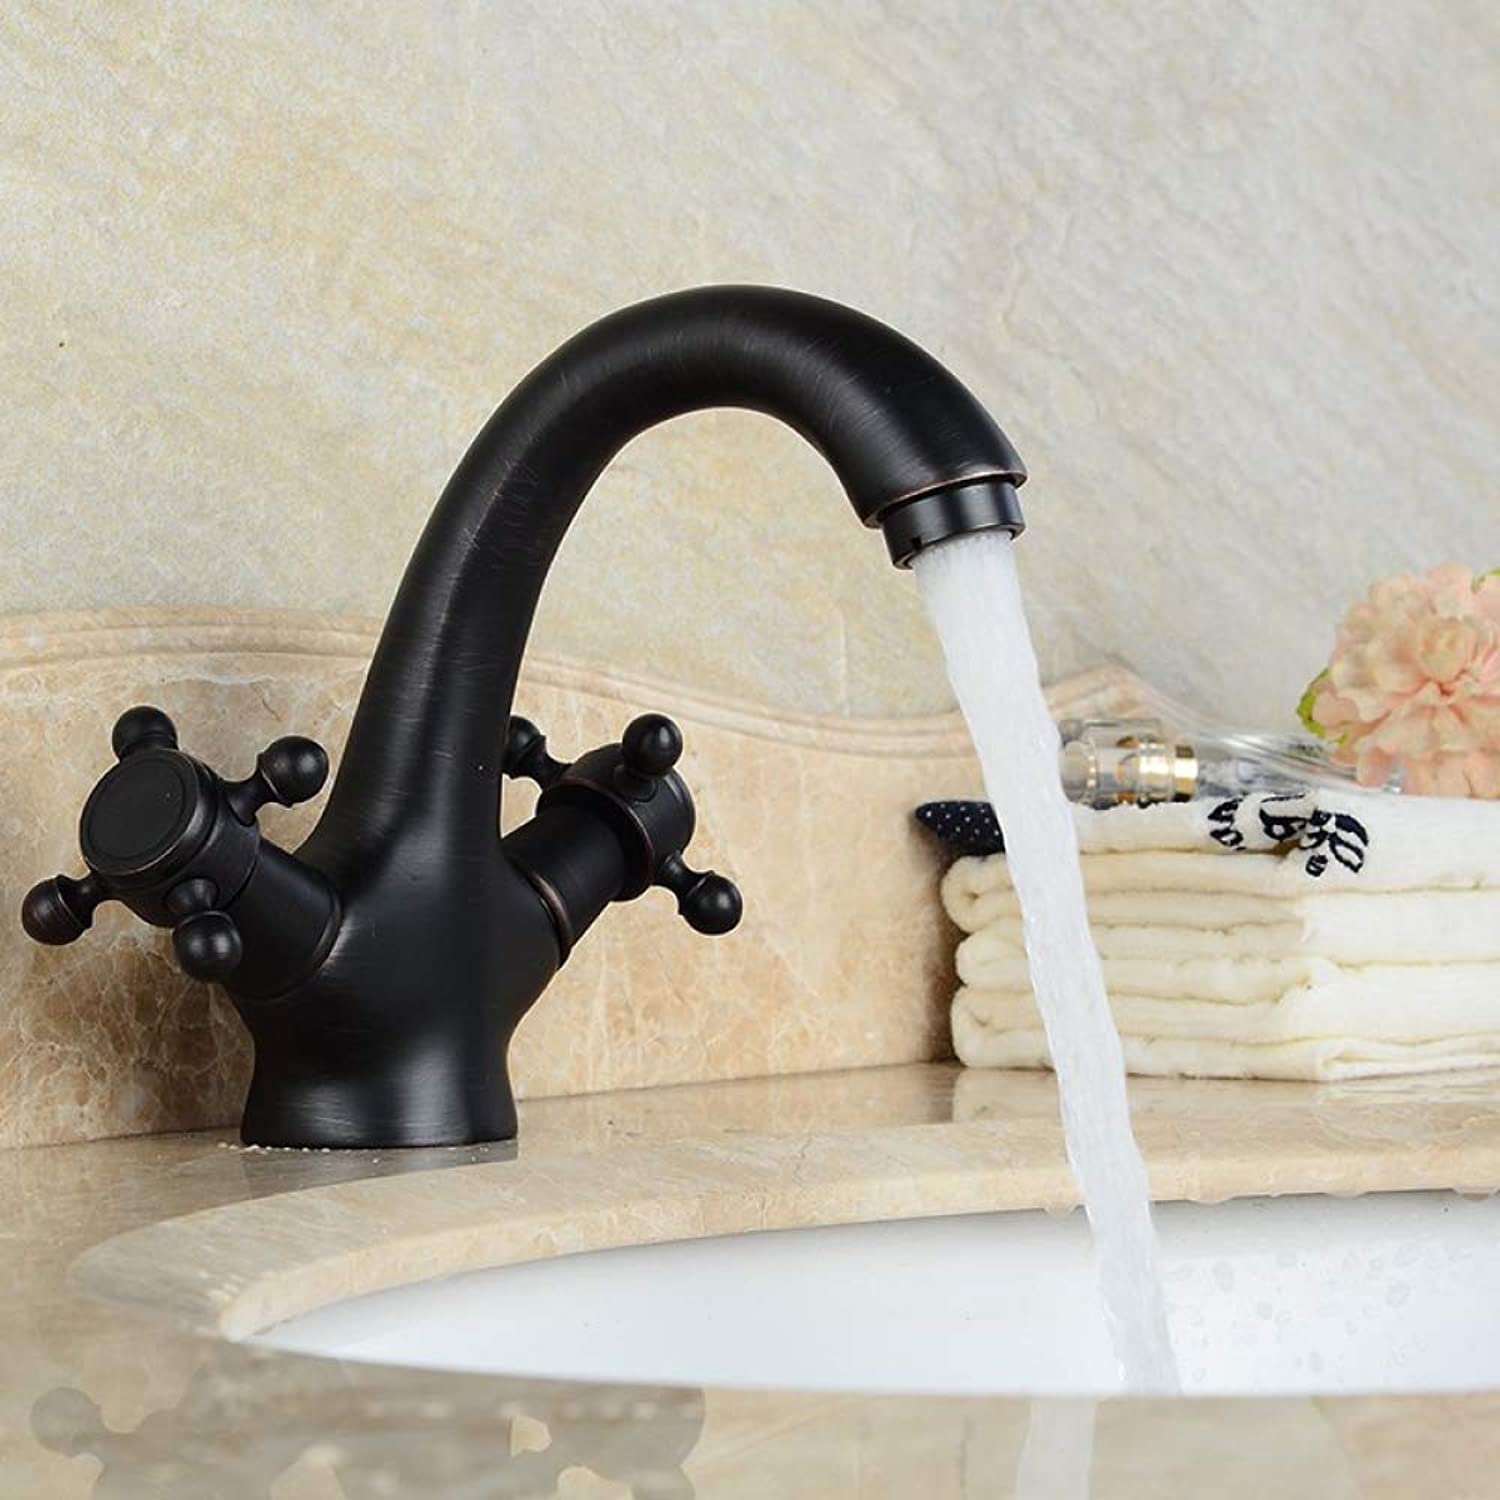 SLTYSCF Faucet Faucet Faucet Antique Brass Faucets Bathroom Faucet Basin Sink Mixer tap swan Neck 534e78